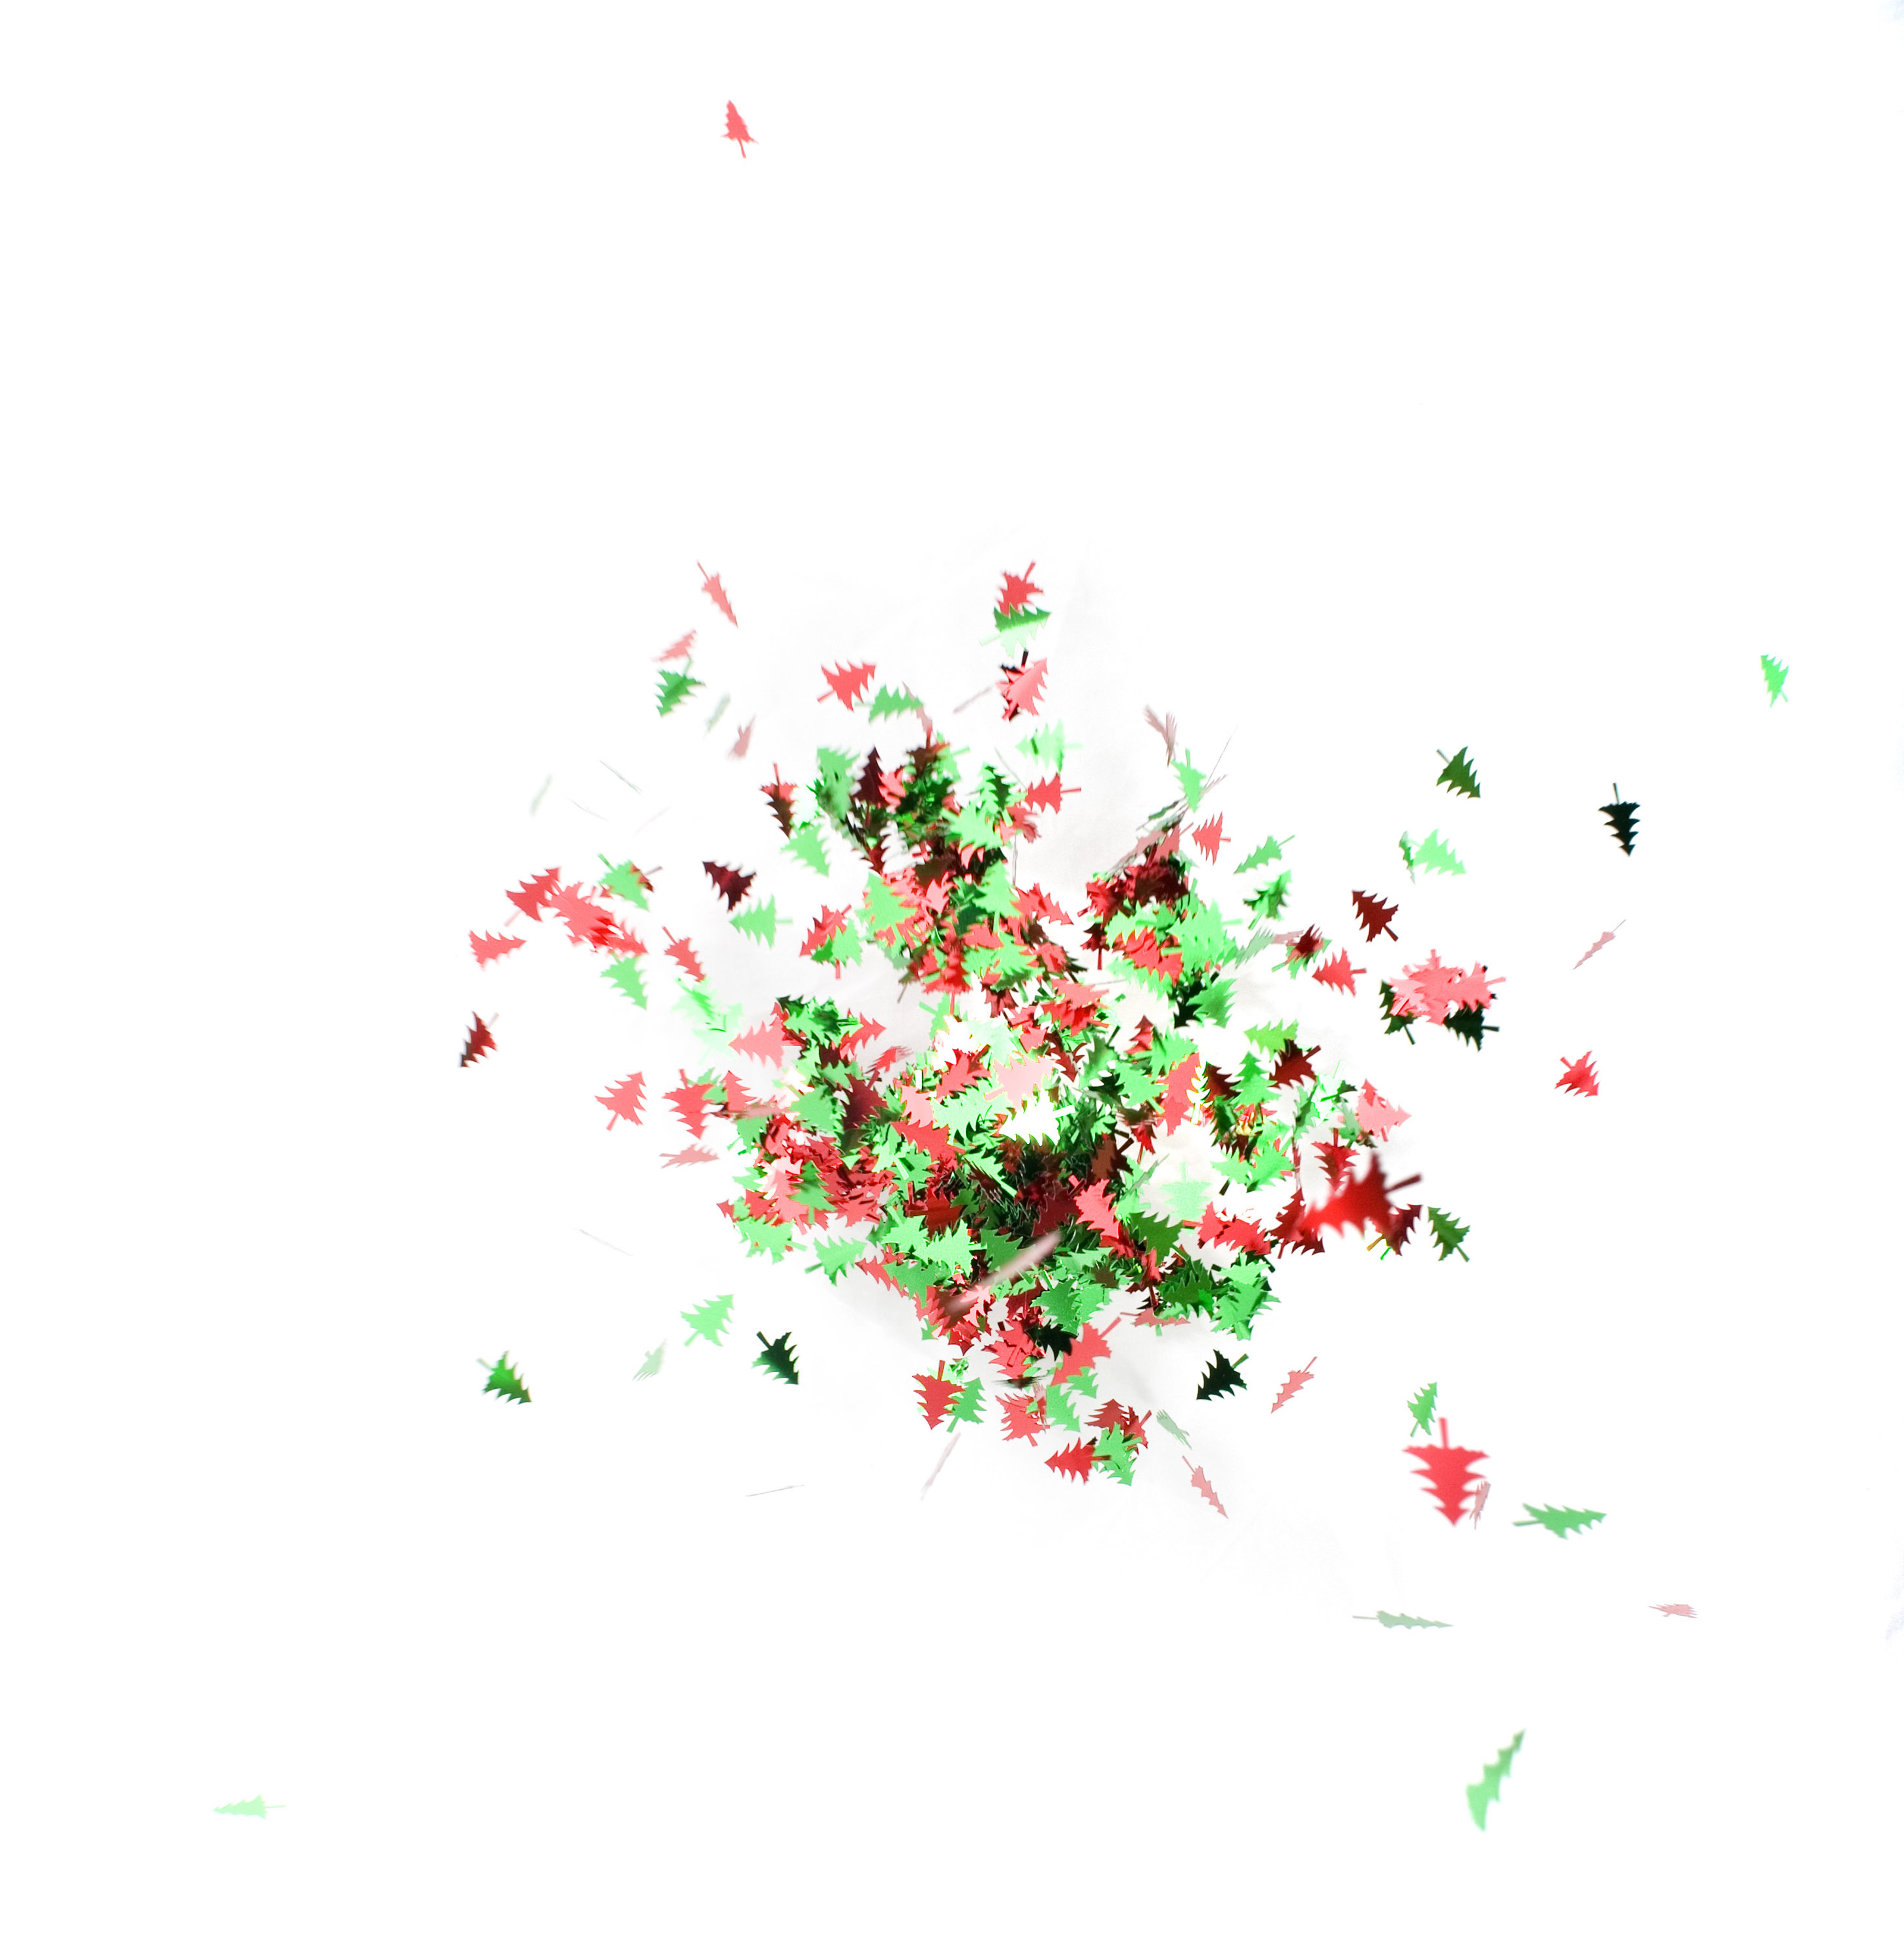 an unusual seasonal background composed of flying christmas tree shaped confetti pieces